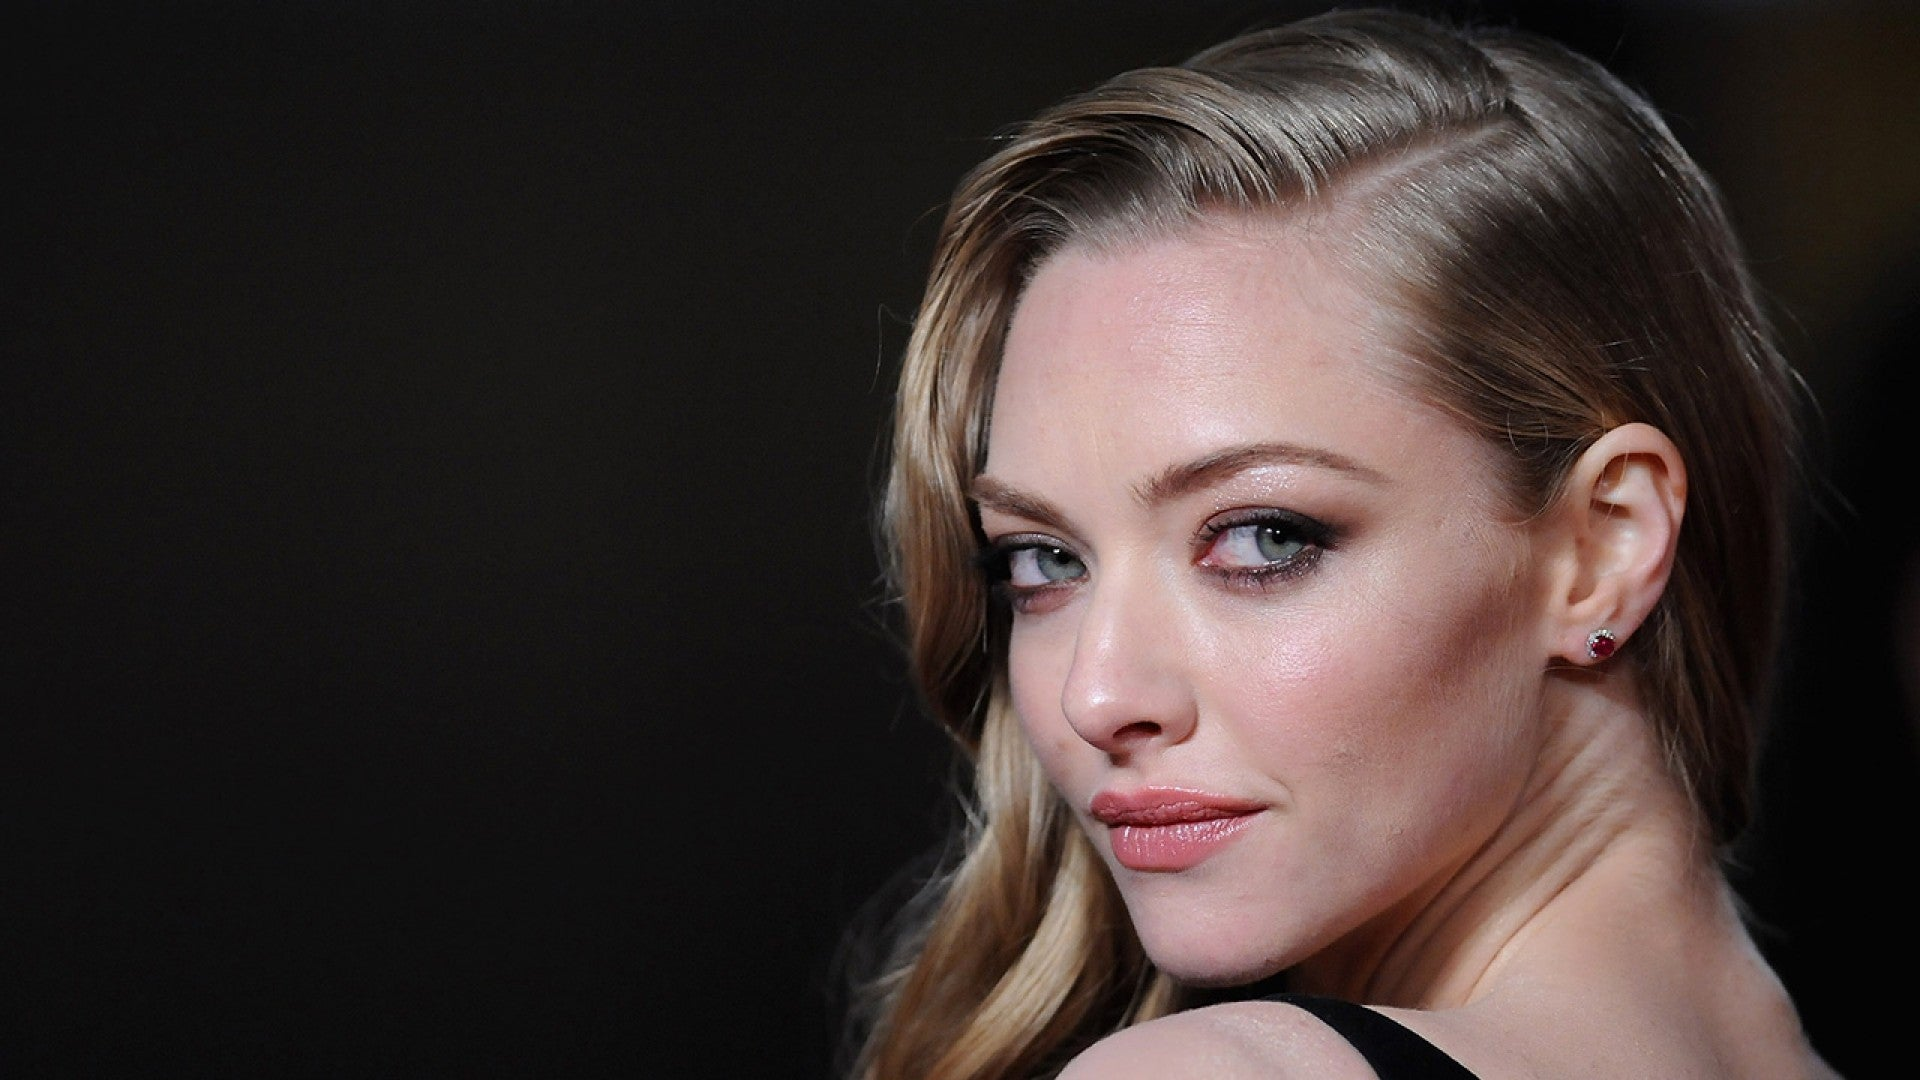 Amanda Seyfried Leaked Pictures